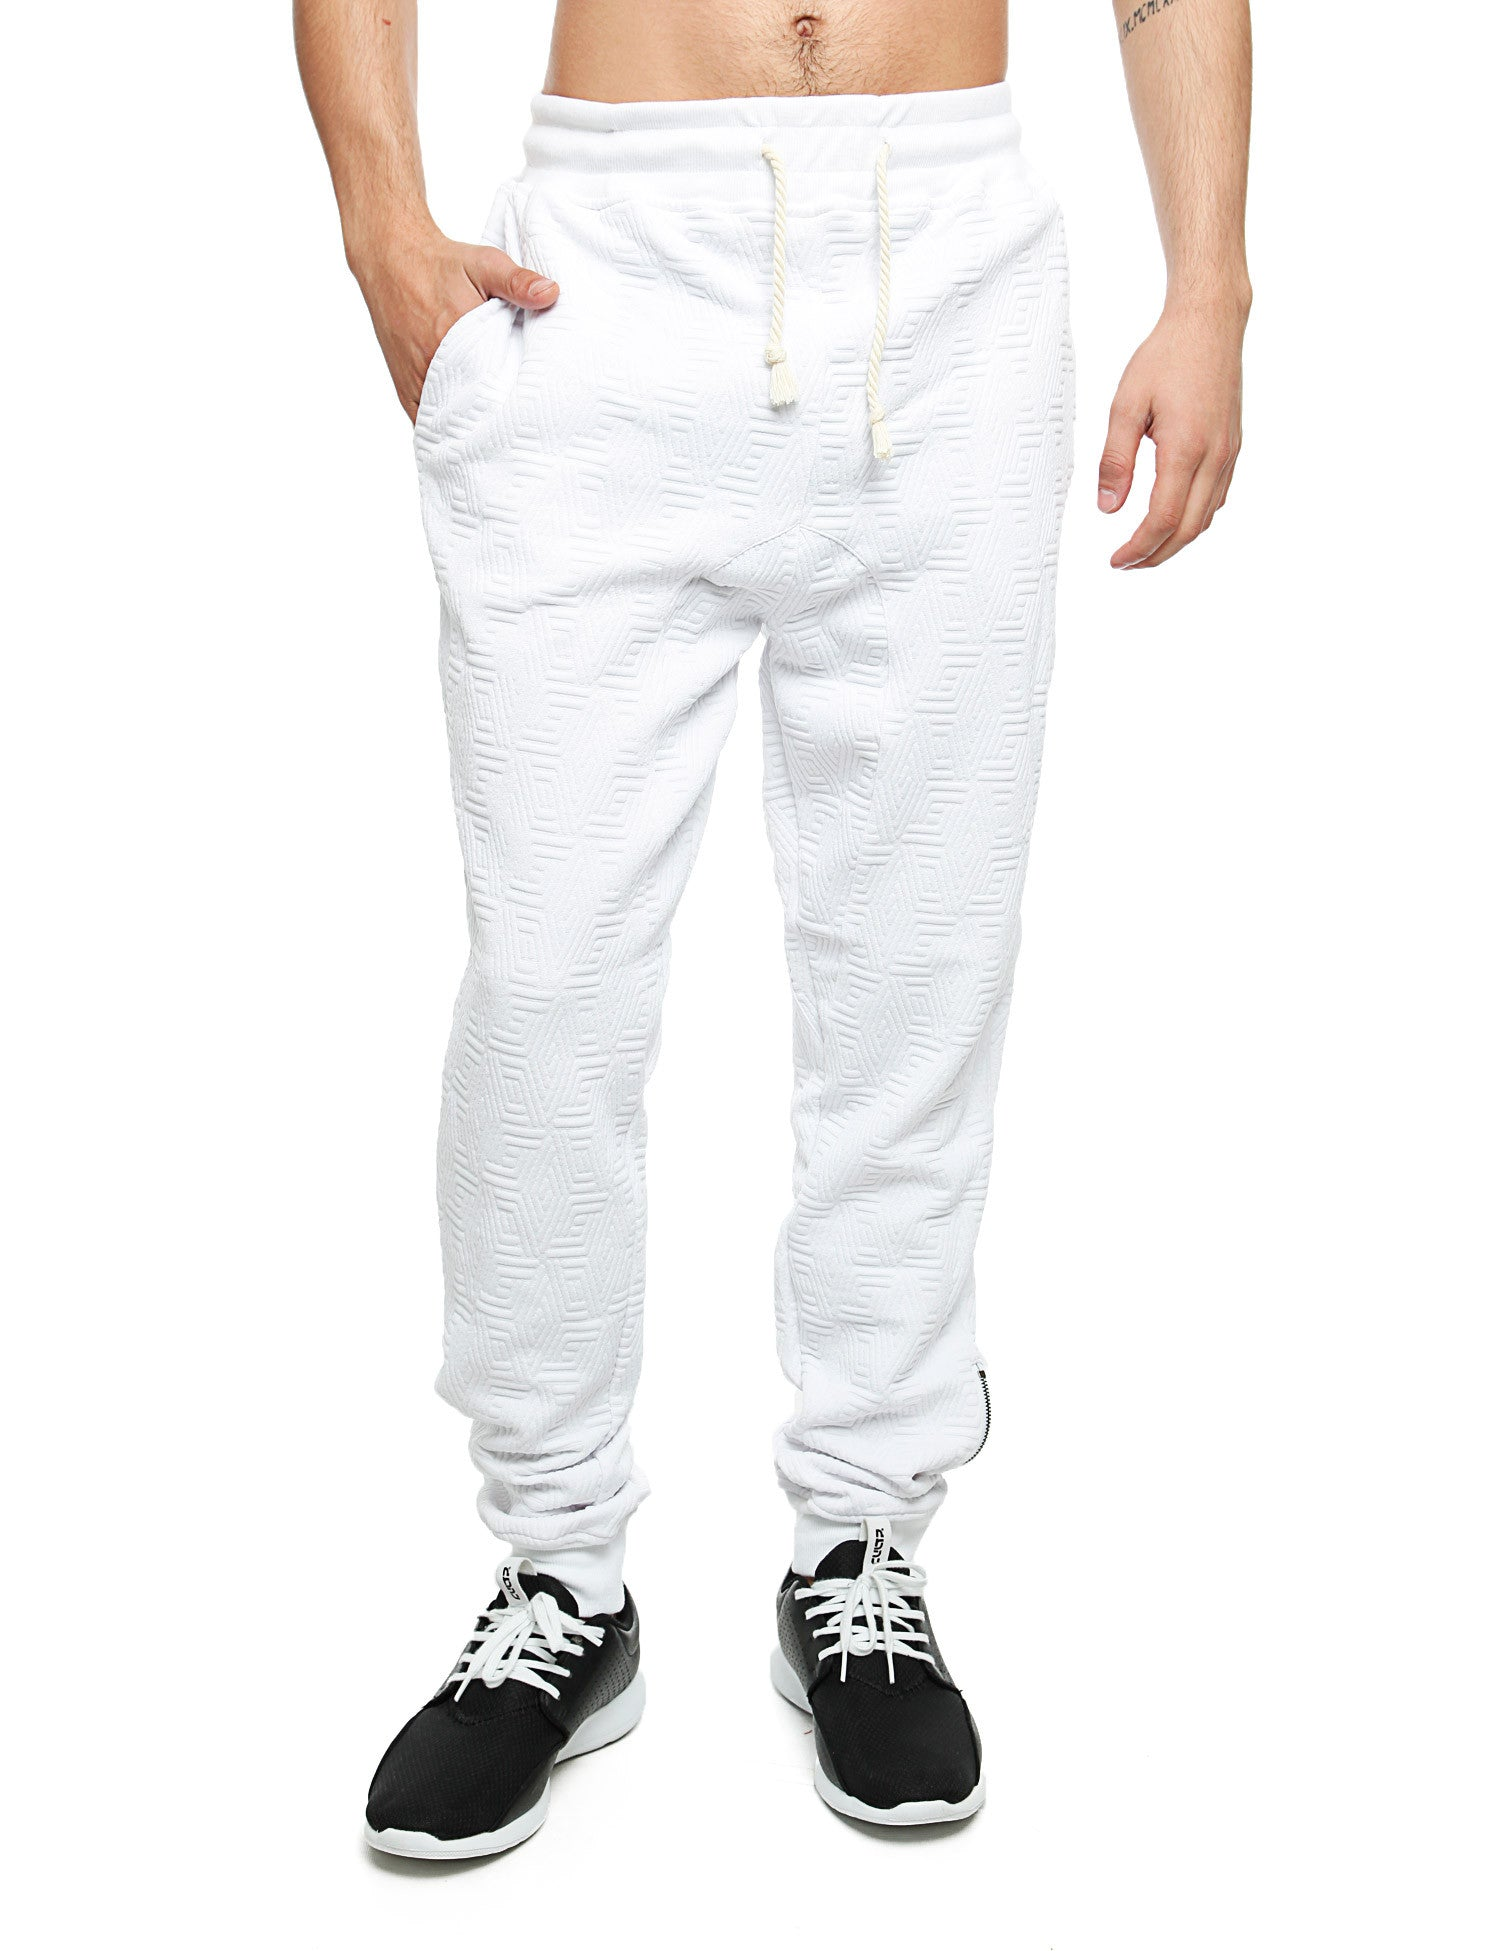 Imperious ´Quilted´ Sweatpant FP542 White